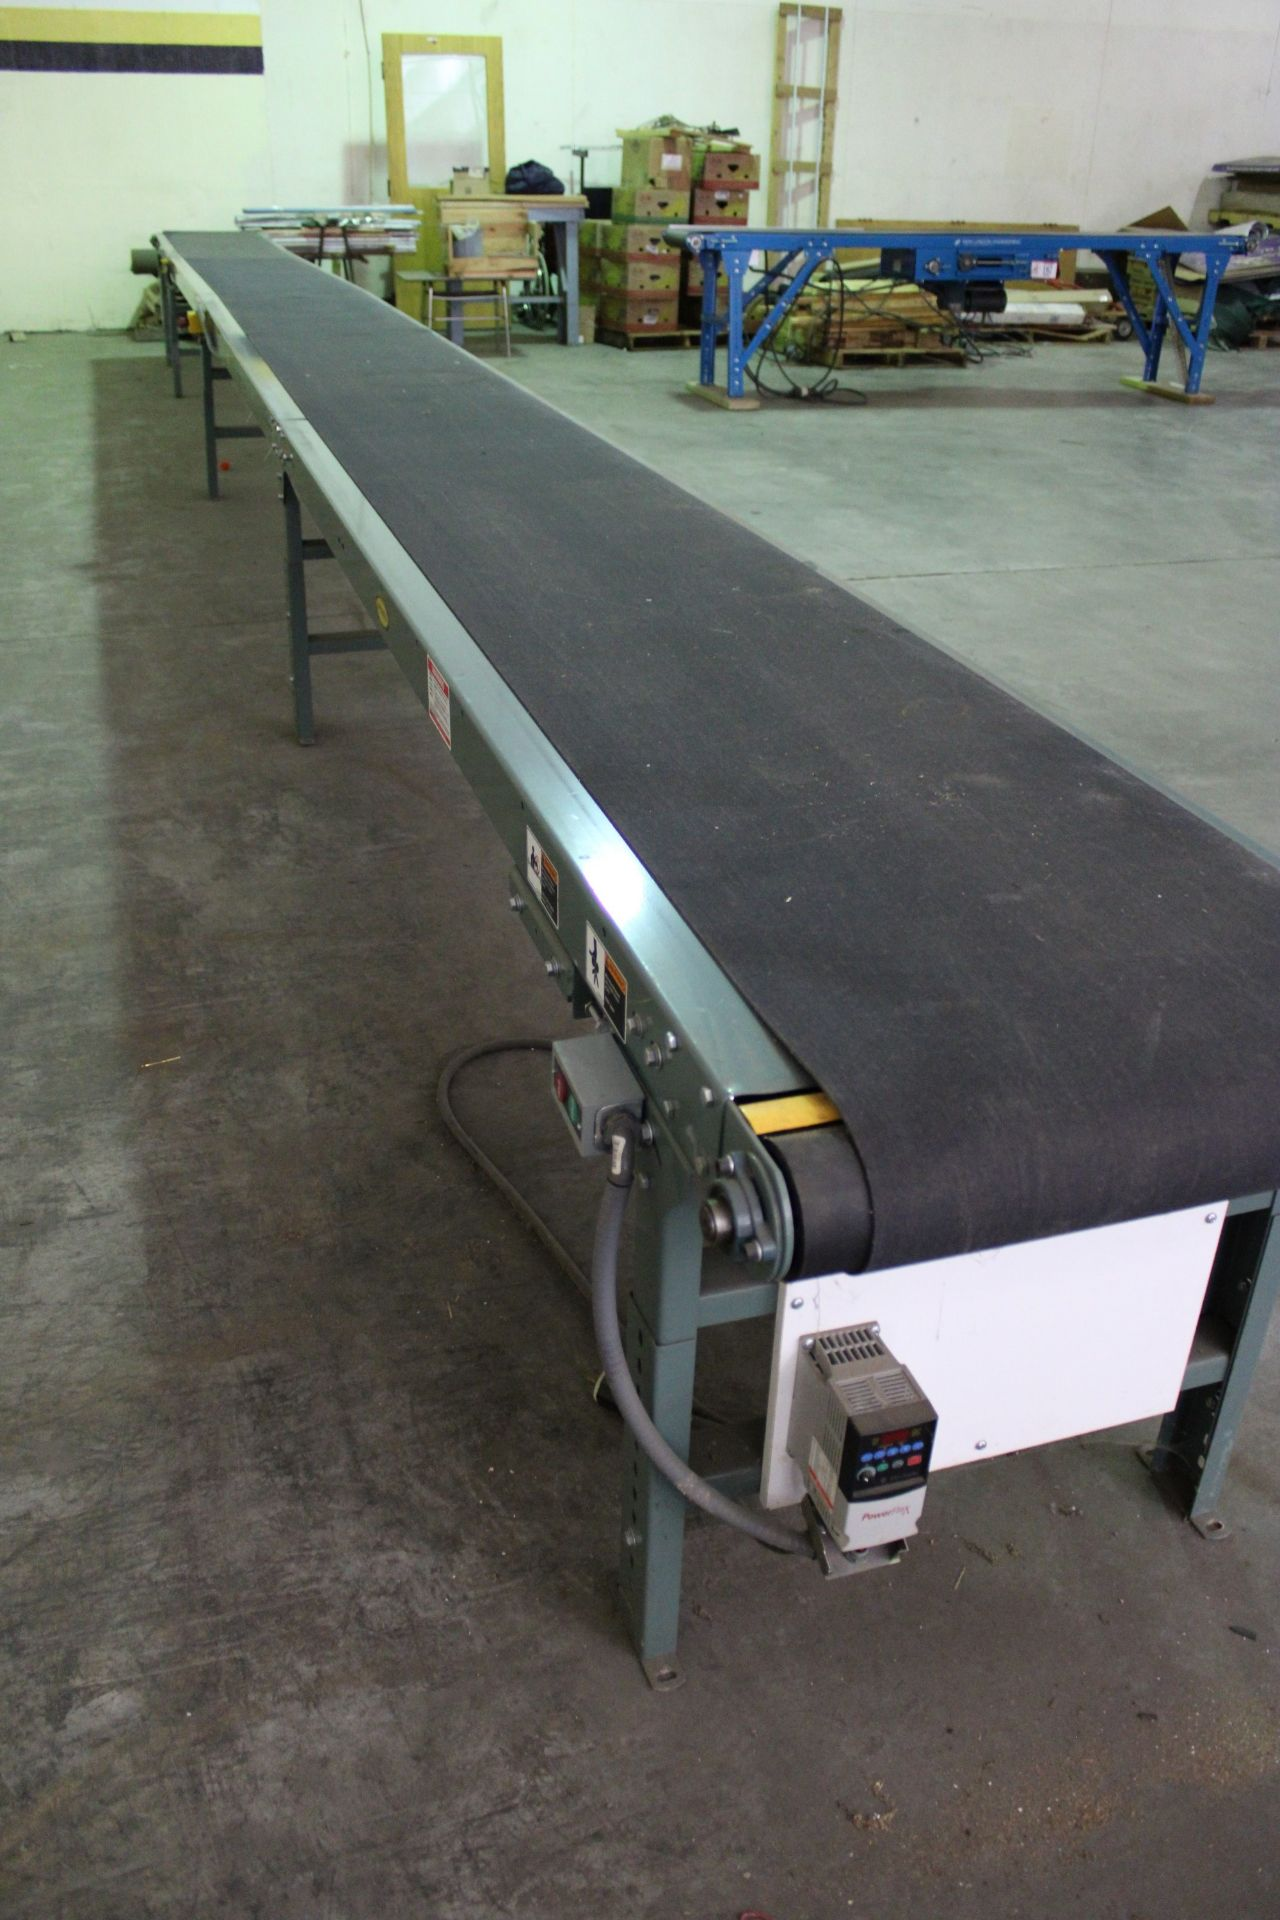 Hytrol Model TA 37ft Power Conveyor, 230 v 3 Phase, New, Used less than 100 hours, Variable speed to - Image 4 of 5